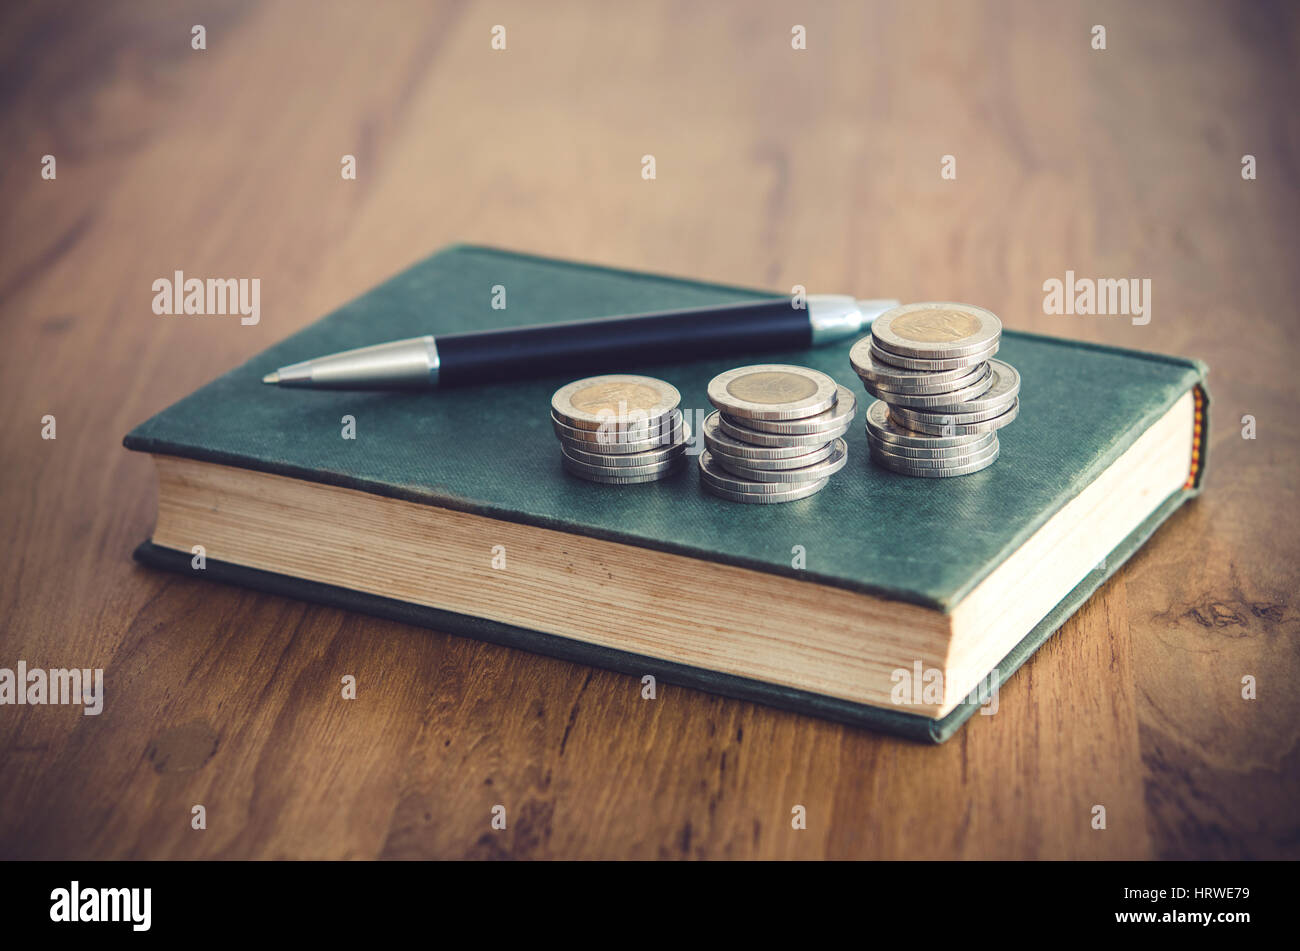 Business concept. Closeup stack of coins, pen and old book on wooden table. - Stock Image